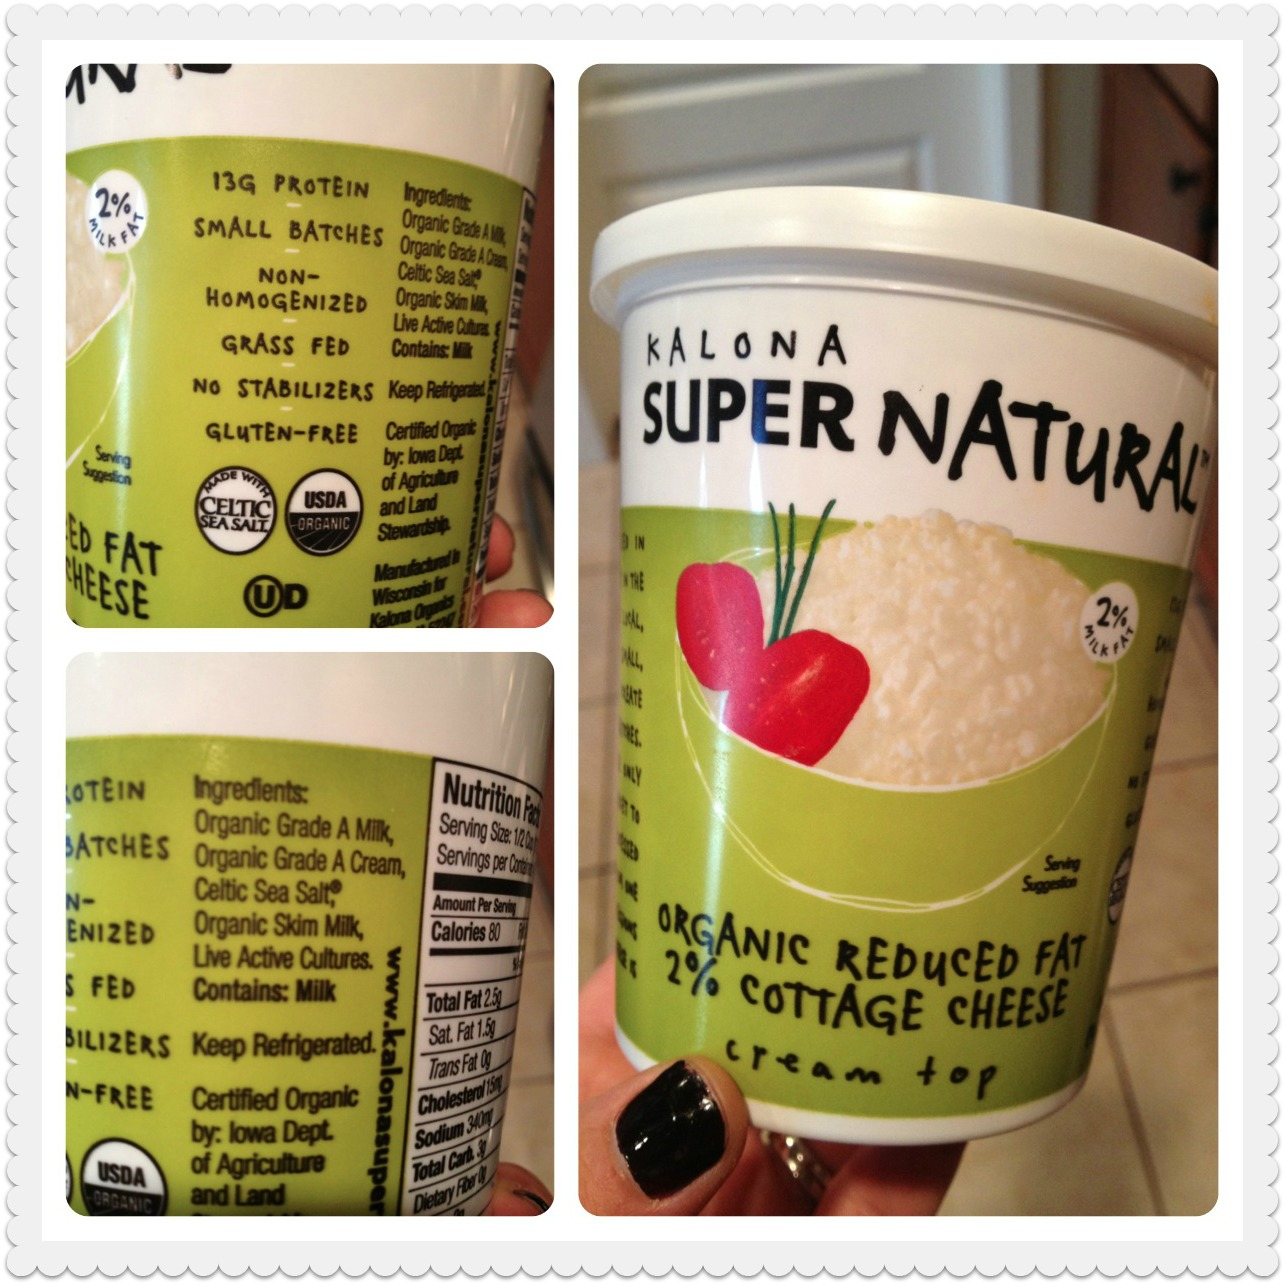 Kalona Super Natural Organic Reduced Fat  Cottage Cheese